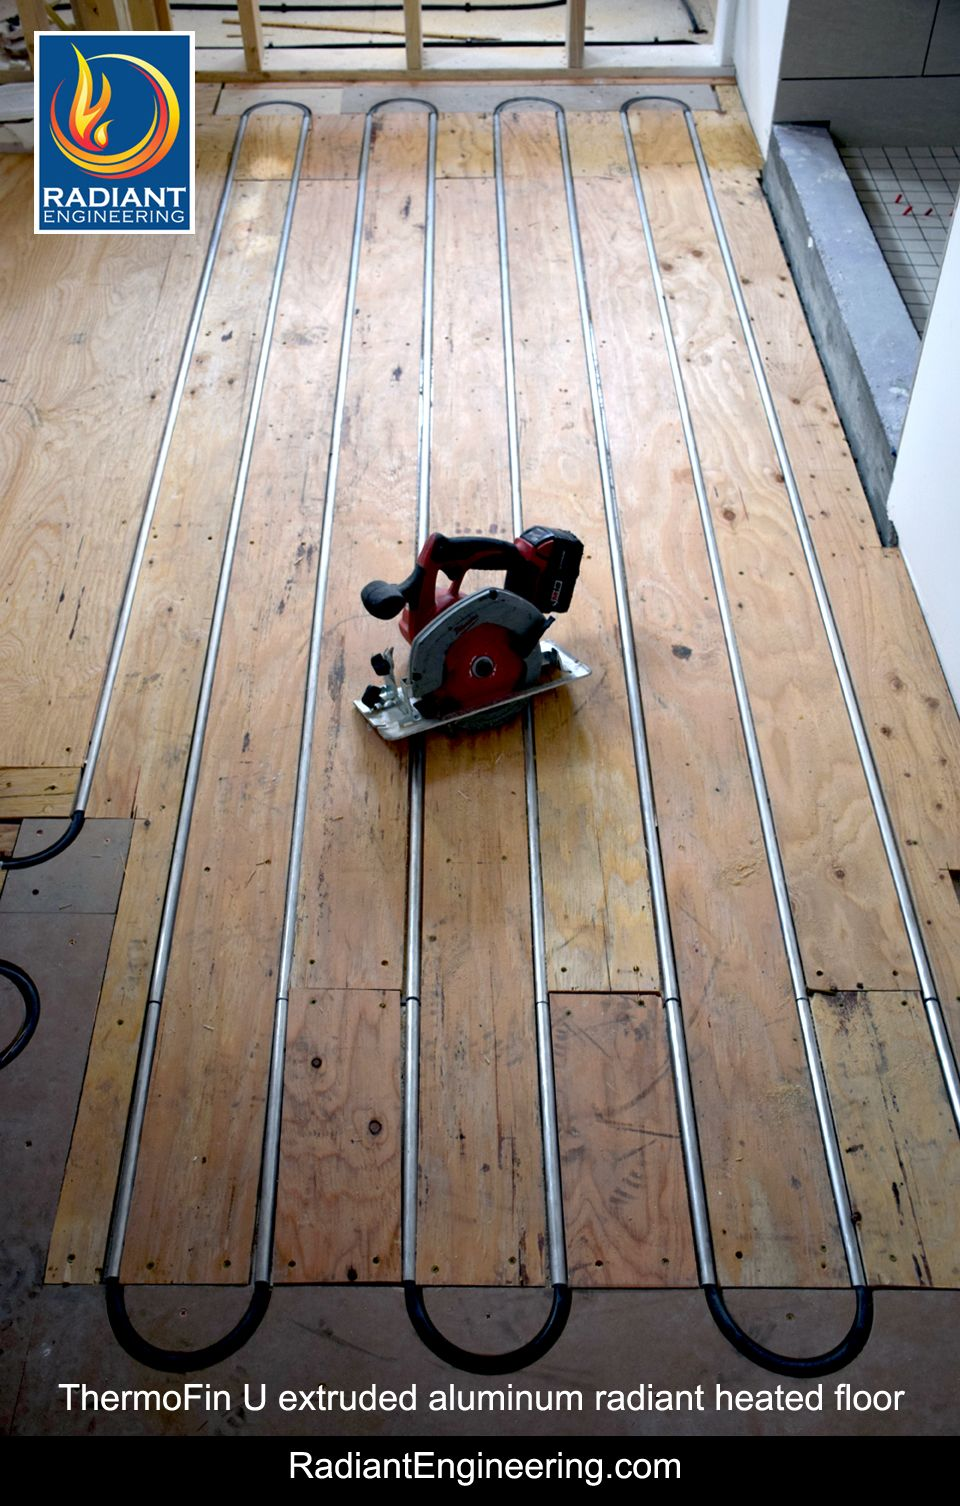 Radiant Heating Is The Most Comfortable And With The New Technology Of Boilers And Outdoor Re Set Controls T House Heating Radiant Floor Heating Heated Floors